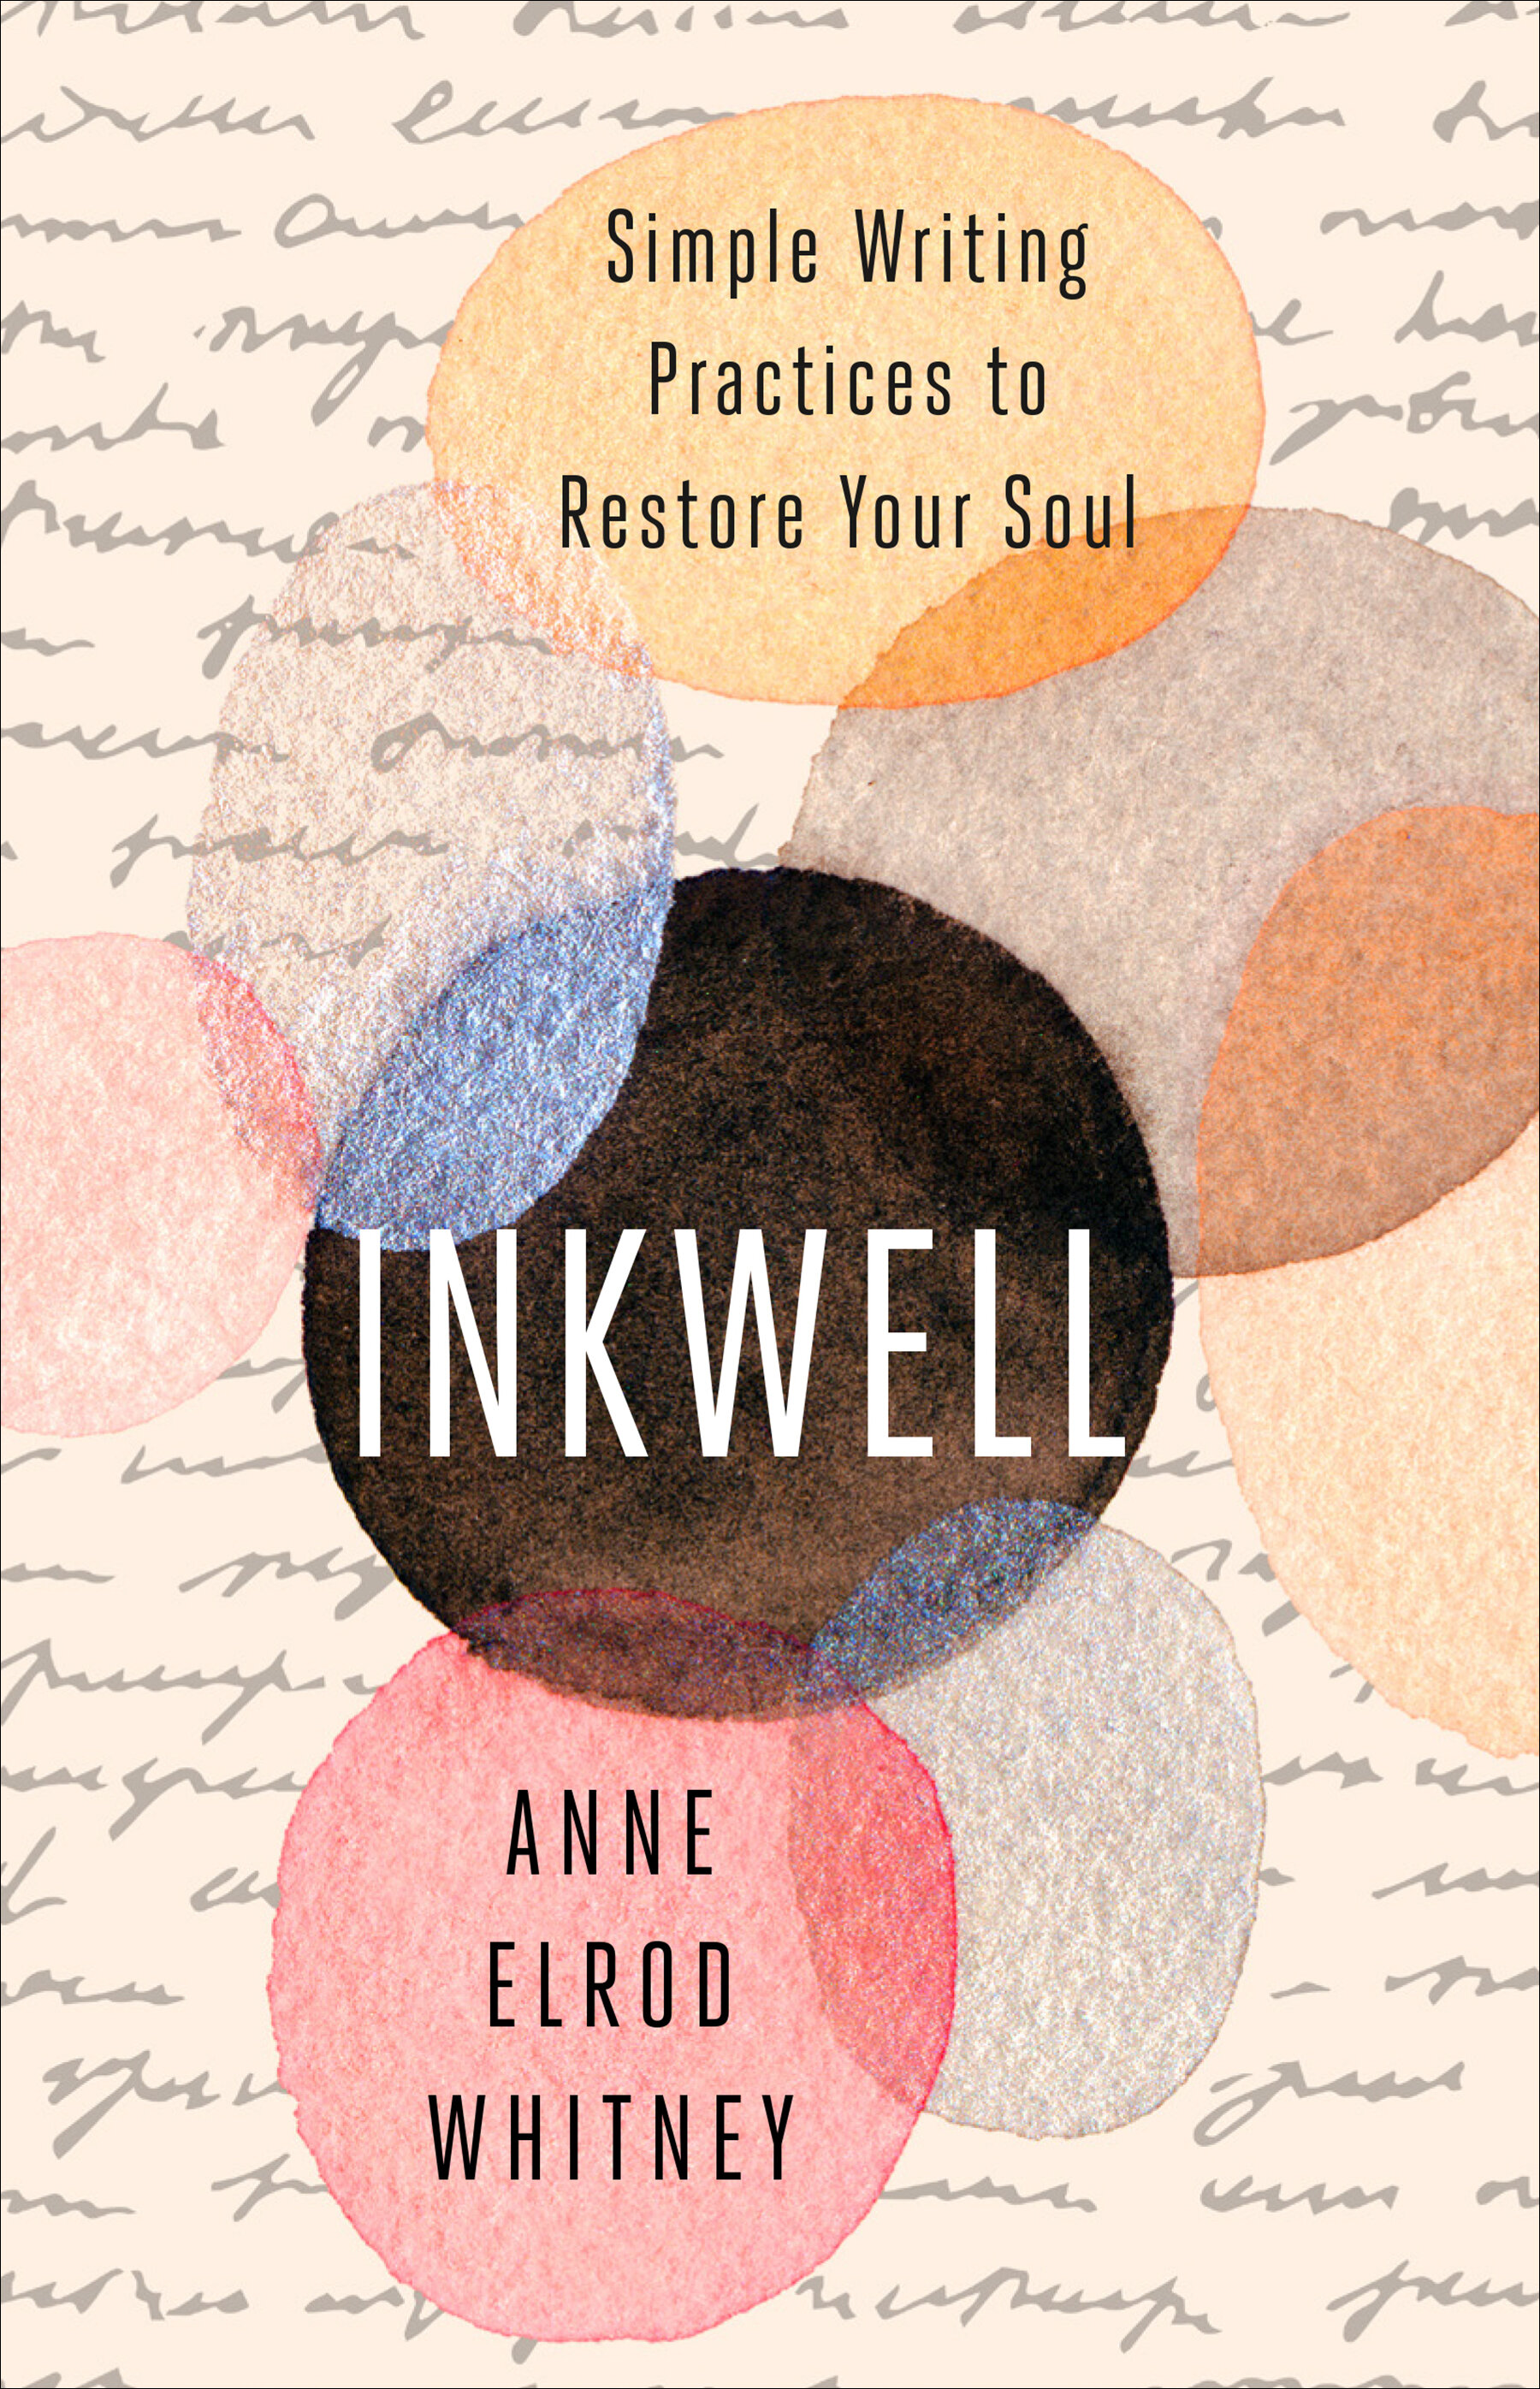 Inkwell: Simple Writing Practices to Restore Your Soul